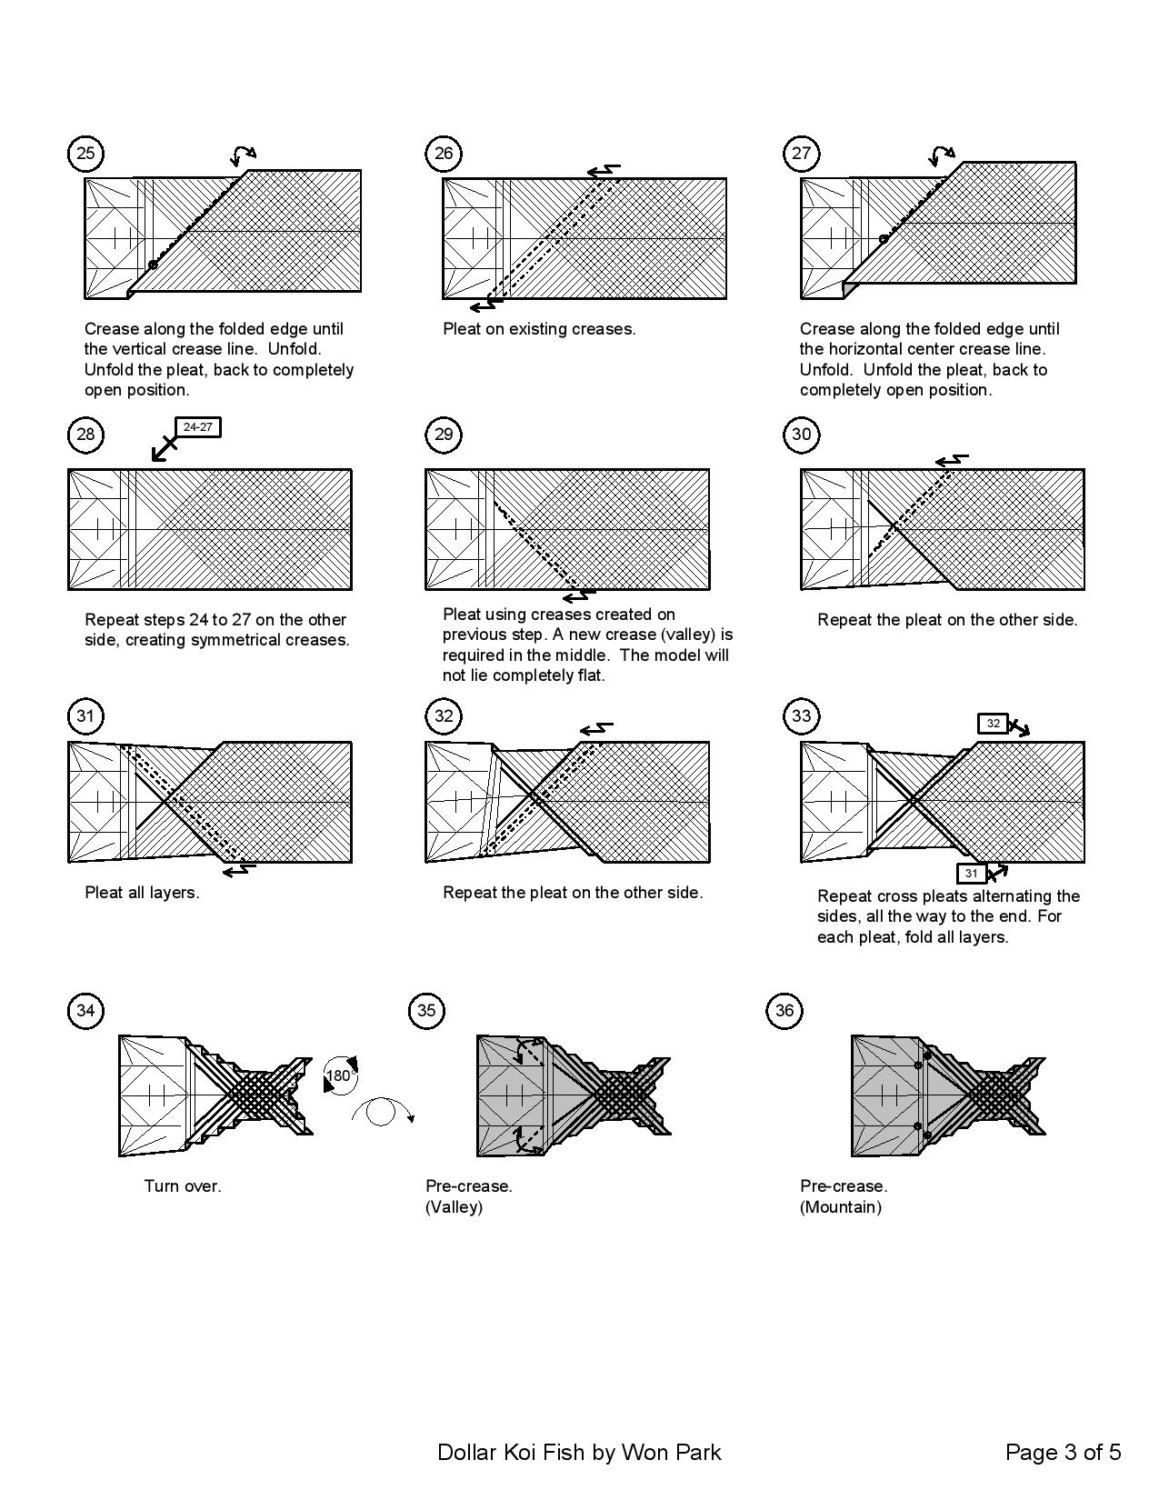 koi fish diagram 3 of 5 money origami dollar bill art money rh pinterest co uk 3d origami koi fish instructions origami koi fish instructions dollar bill